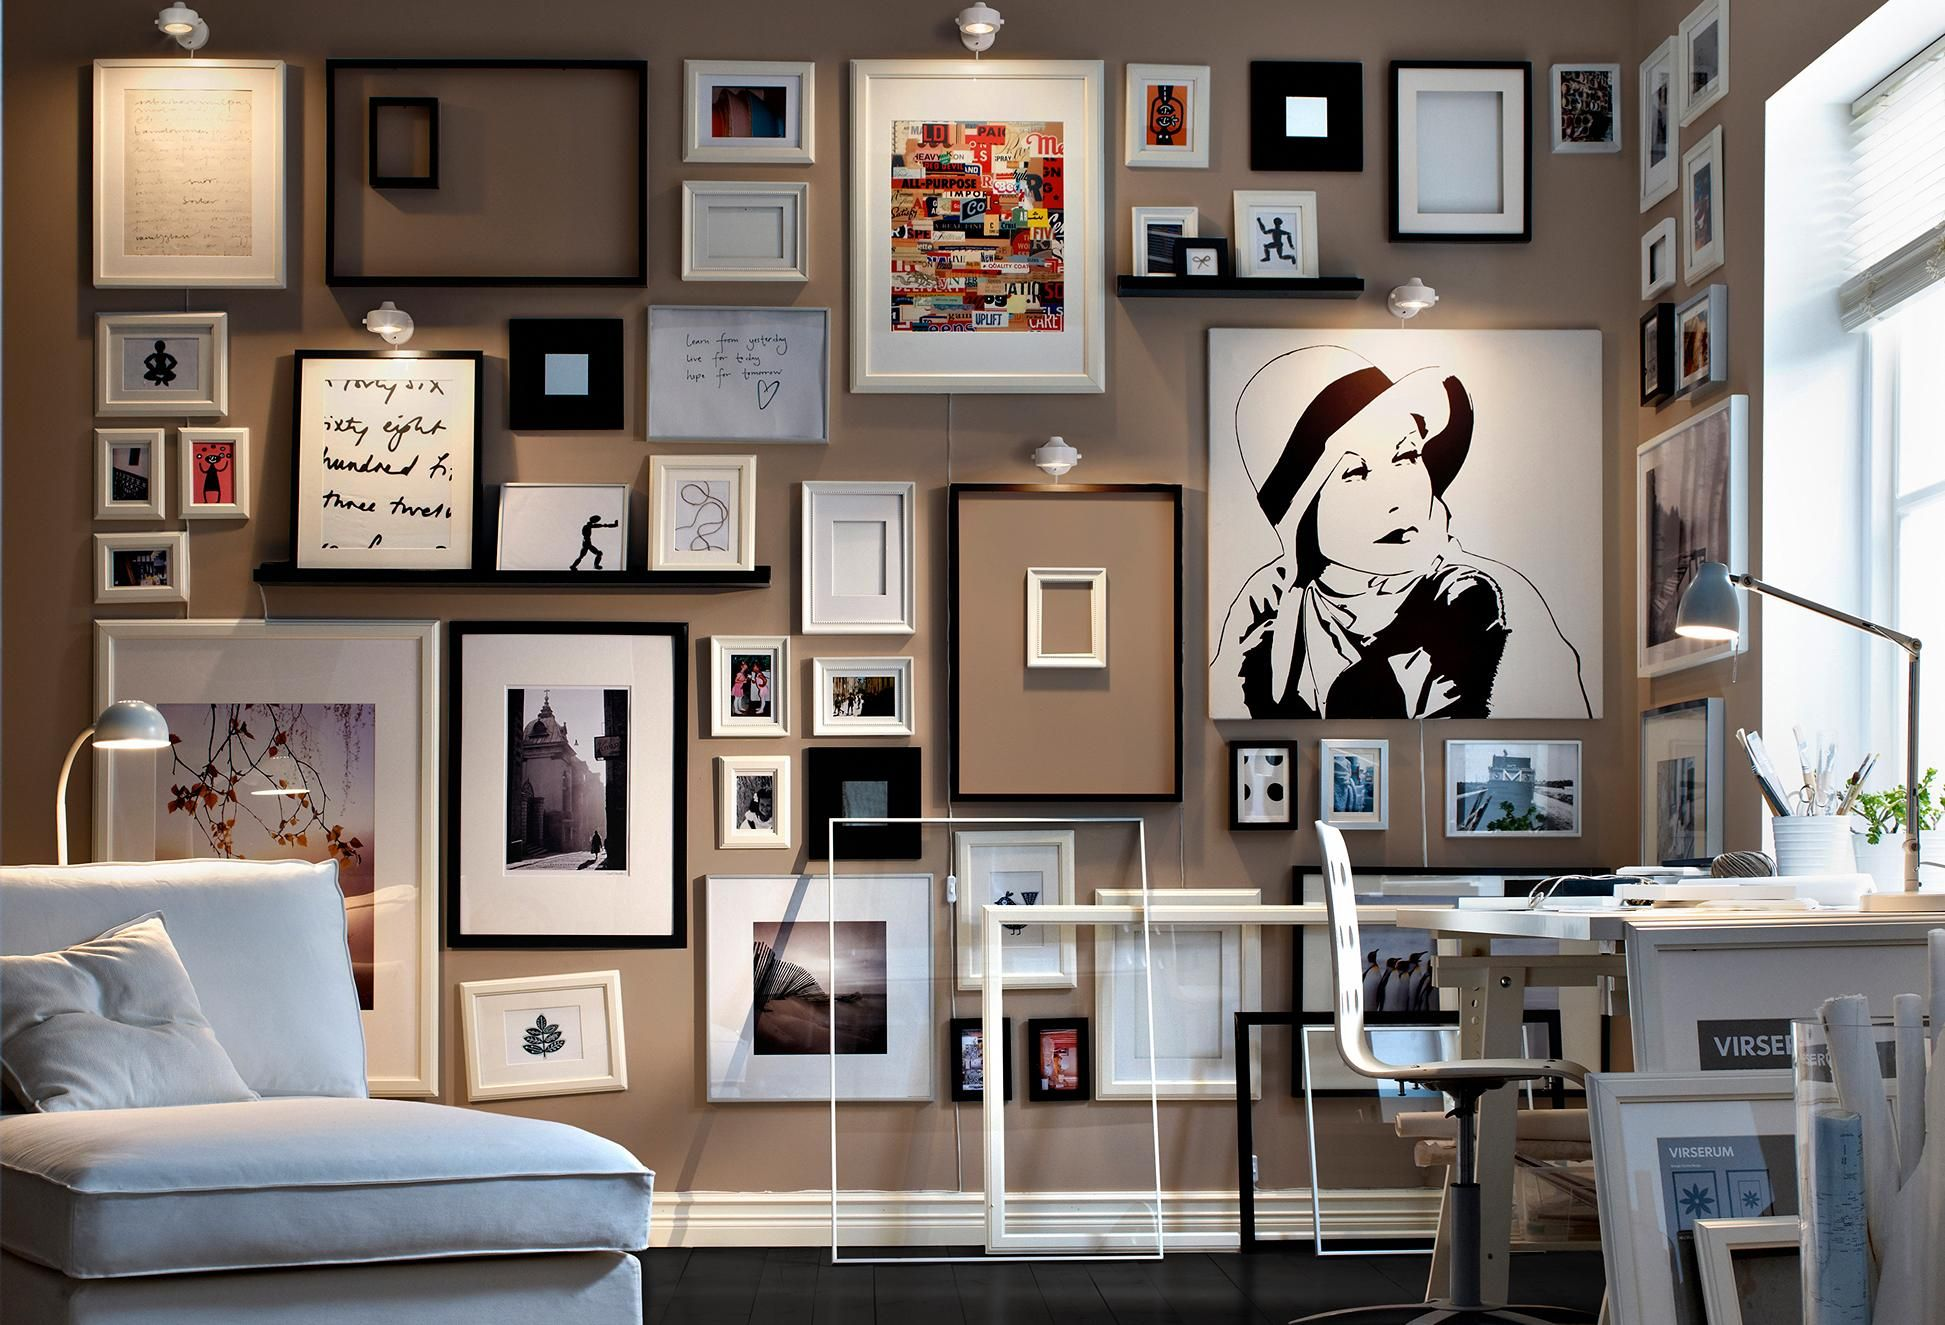 Interior Designer S Tips For Hanging Art And Accessories Frames On Wall Home Inspiration Wall